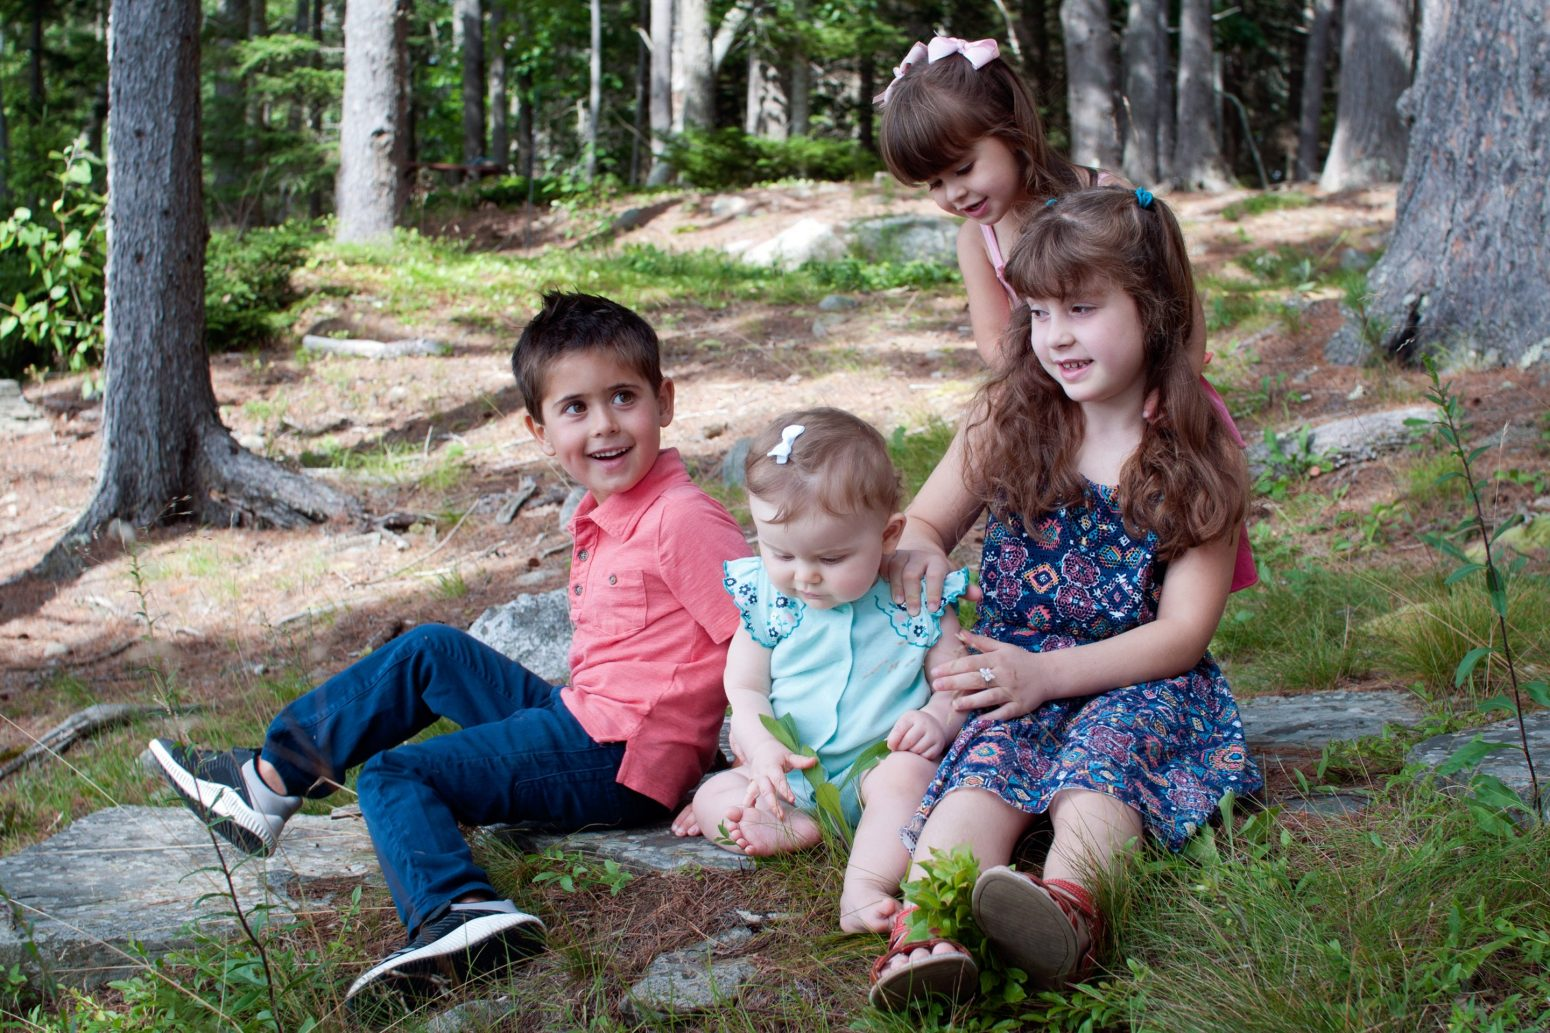 candid portrait of four young children sitting together in the forest